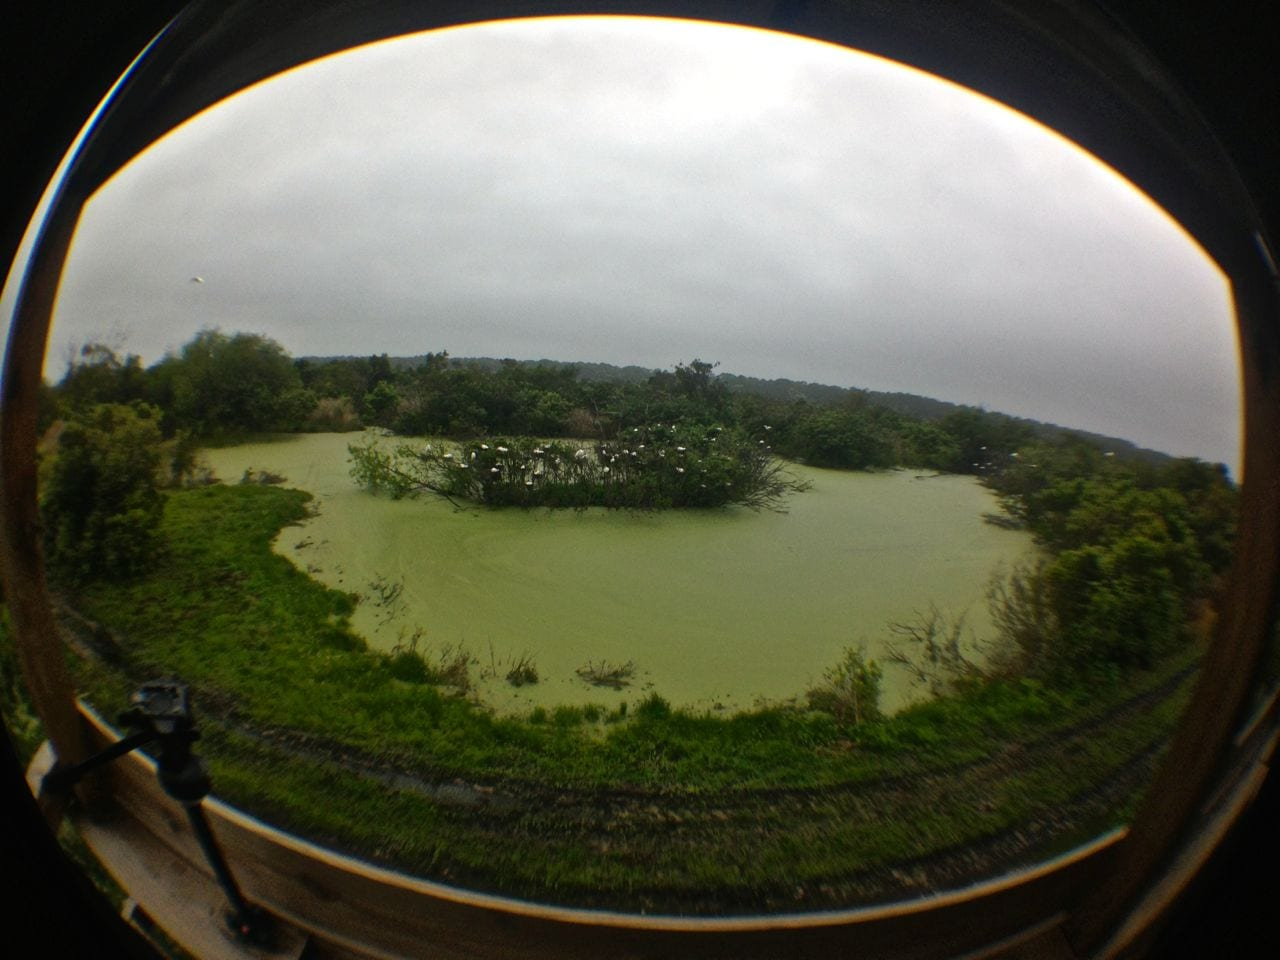 Fisheye shot taken with my Olloclip lens on iPhone 5